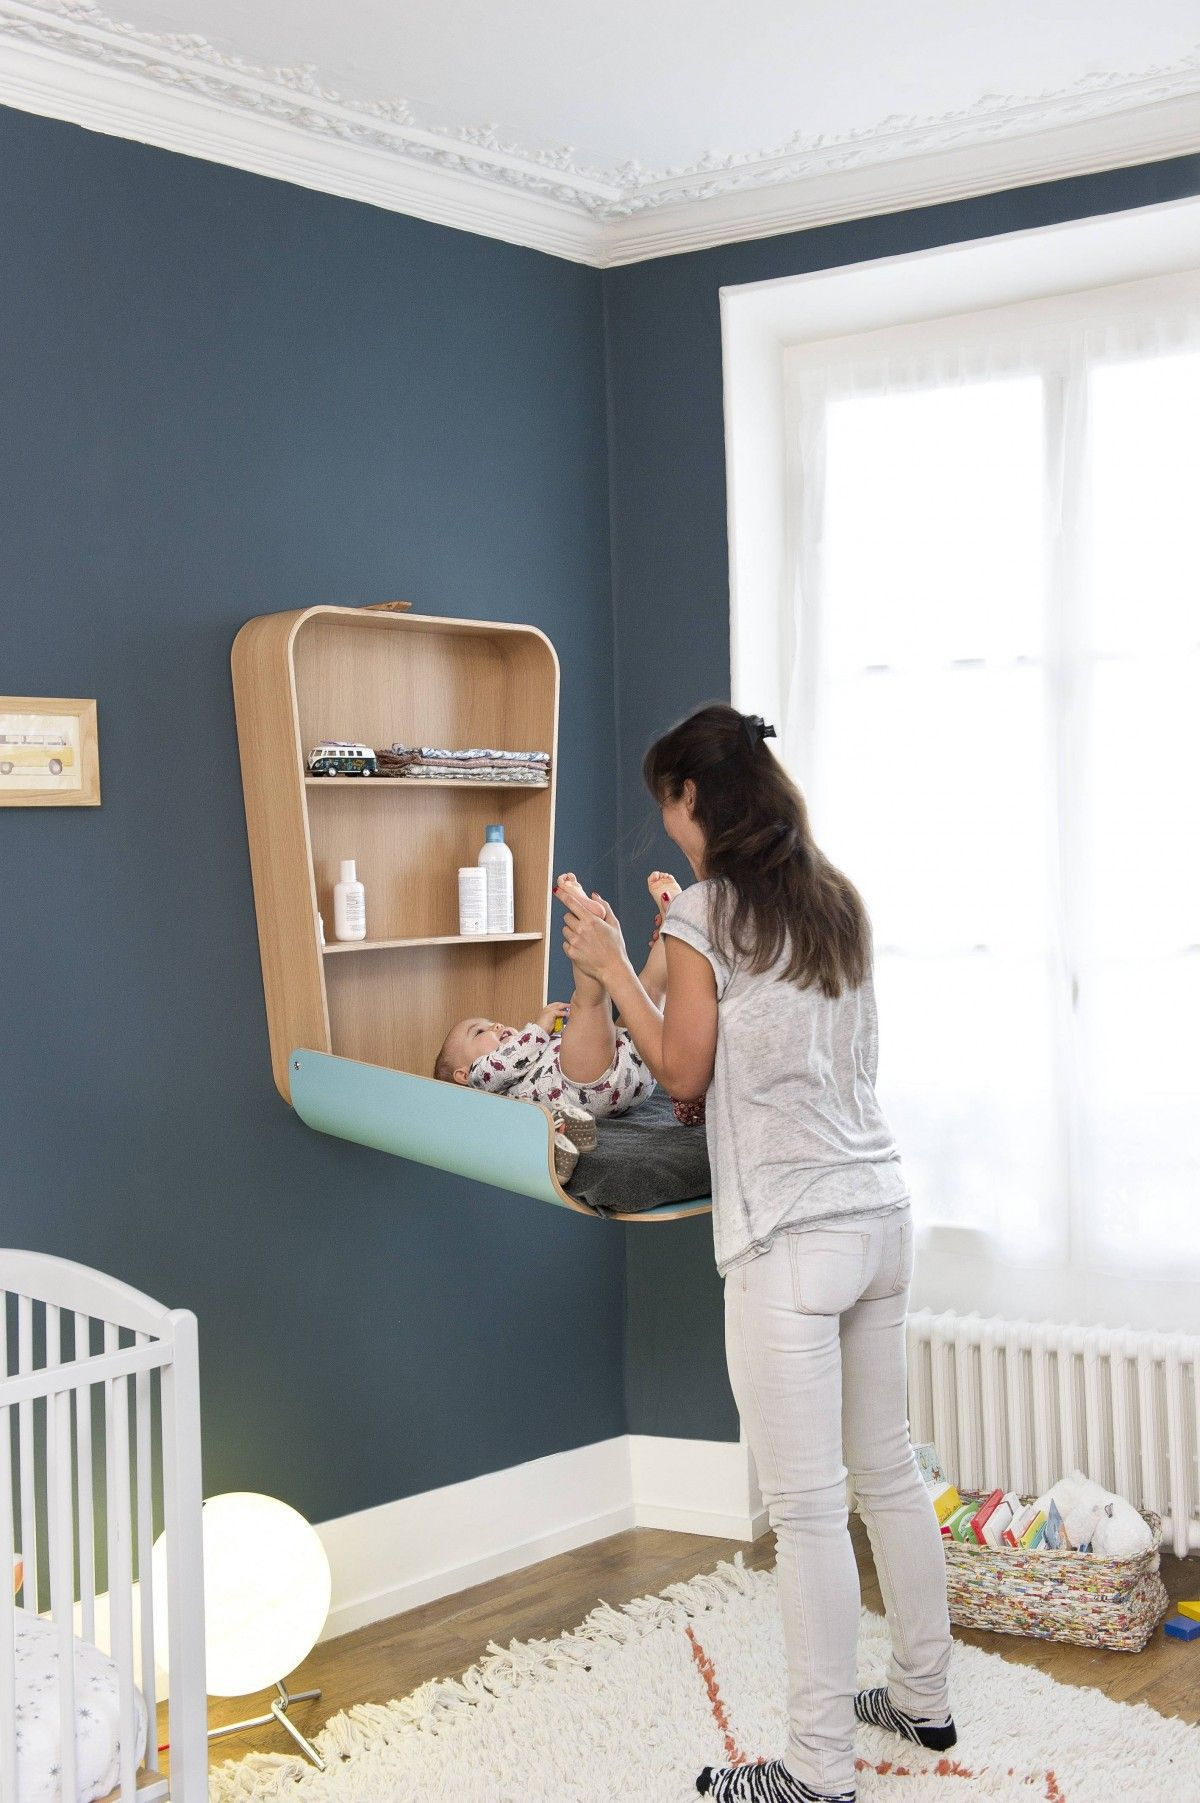 Klappbarer Wickeltisch Pin By Muko On Bed Pinterest Baby Kinderzimmer Kinderzimmer